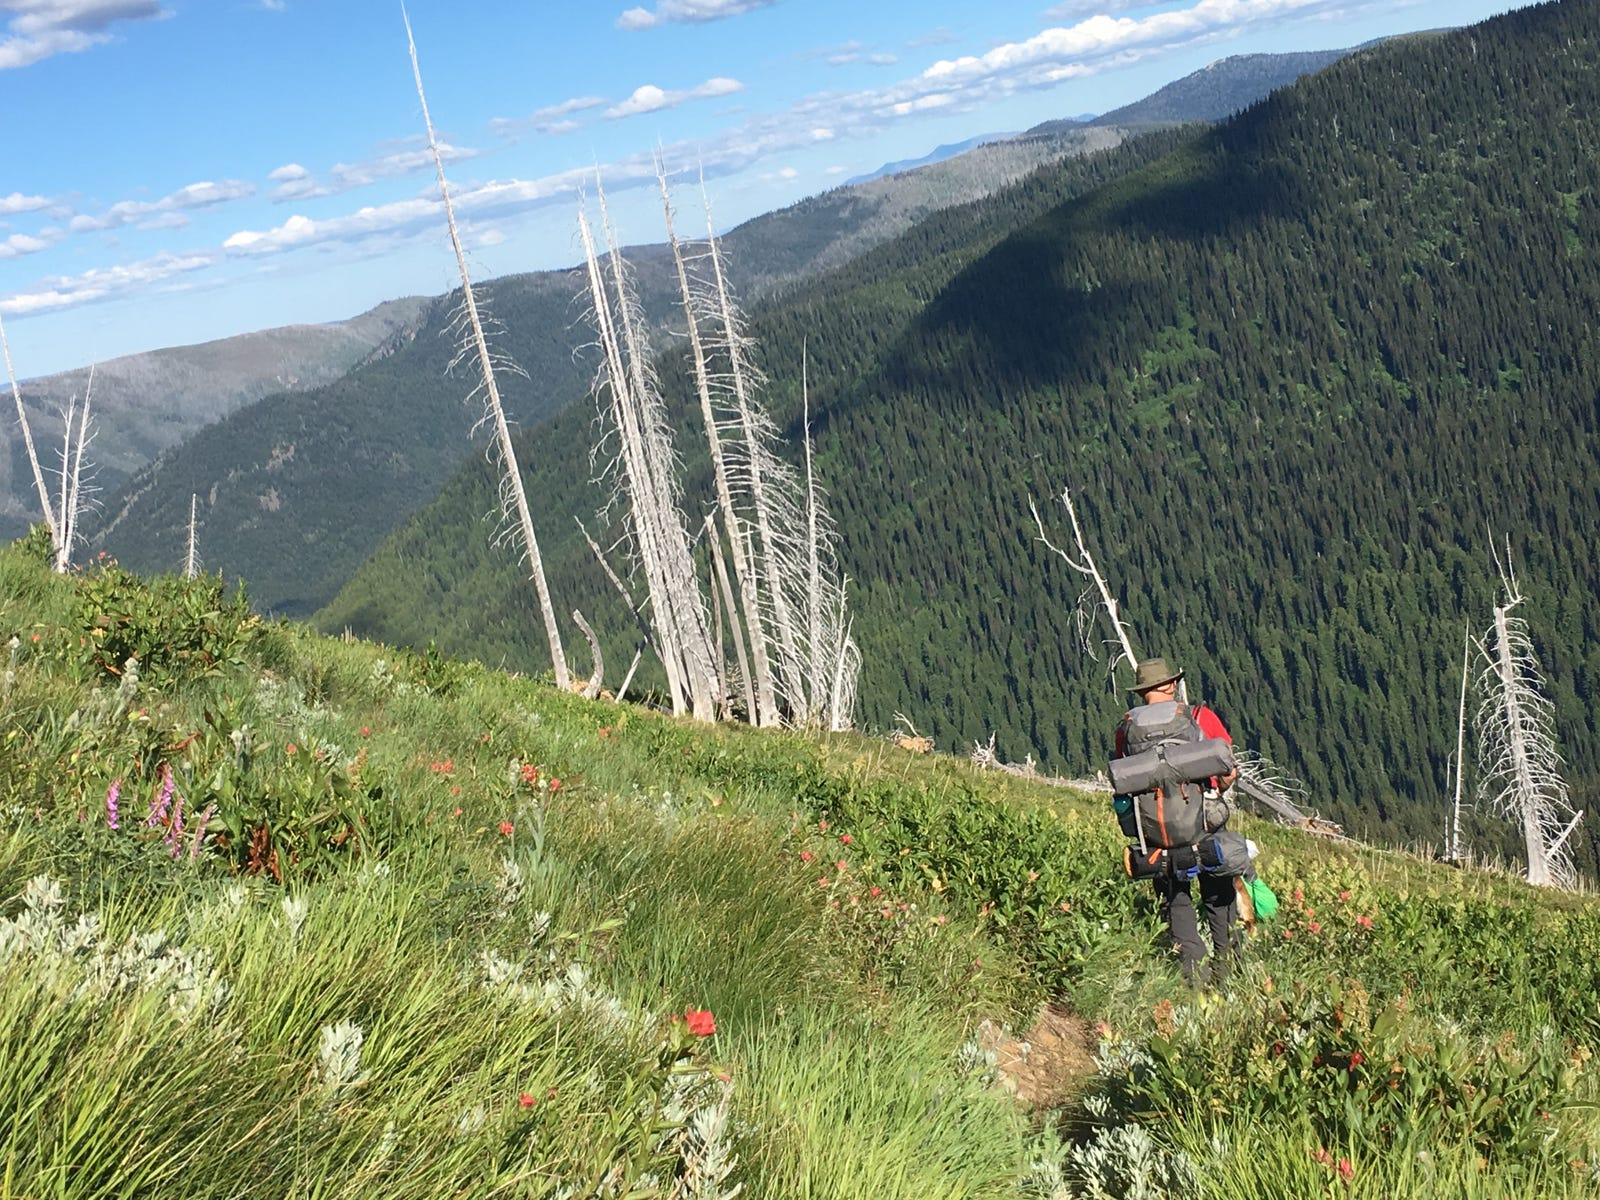 On my backpacking trip, a steep descent from Chilcoot Pass after 10 miles of uphill slog - Lolo National Forest, Montana